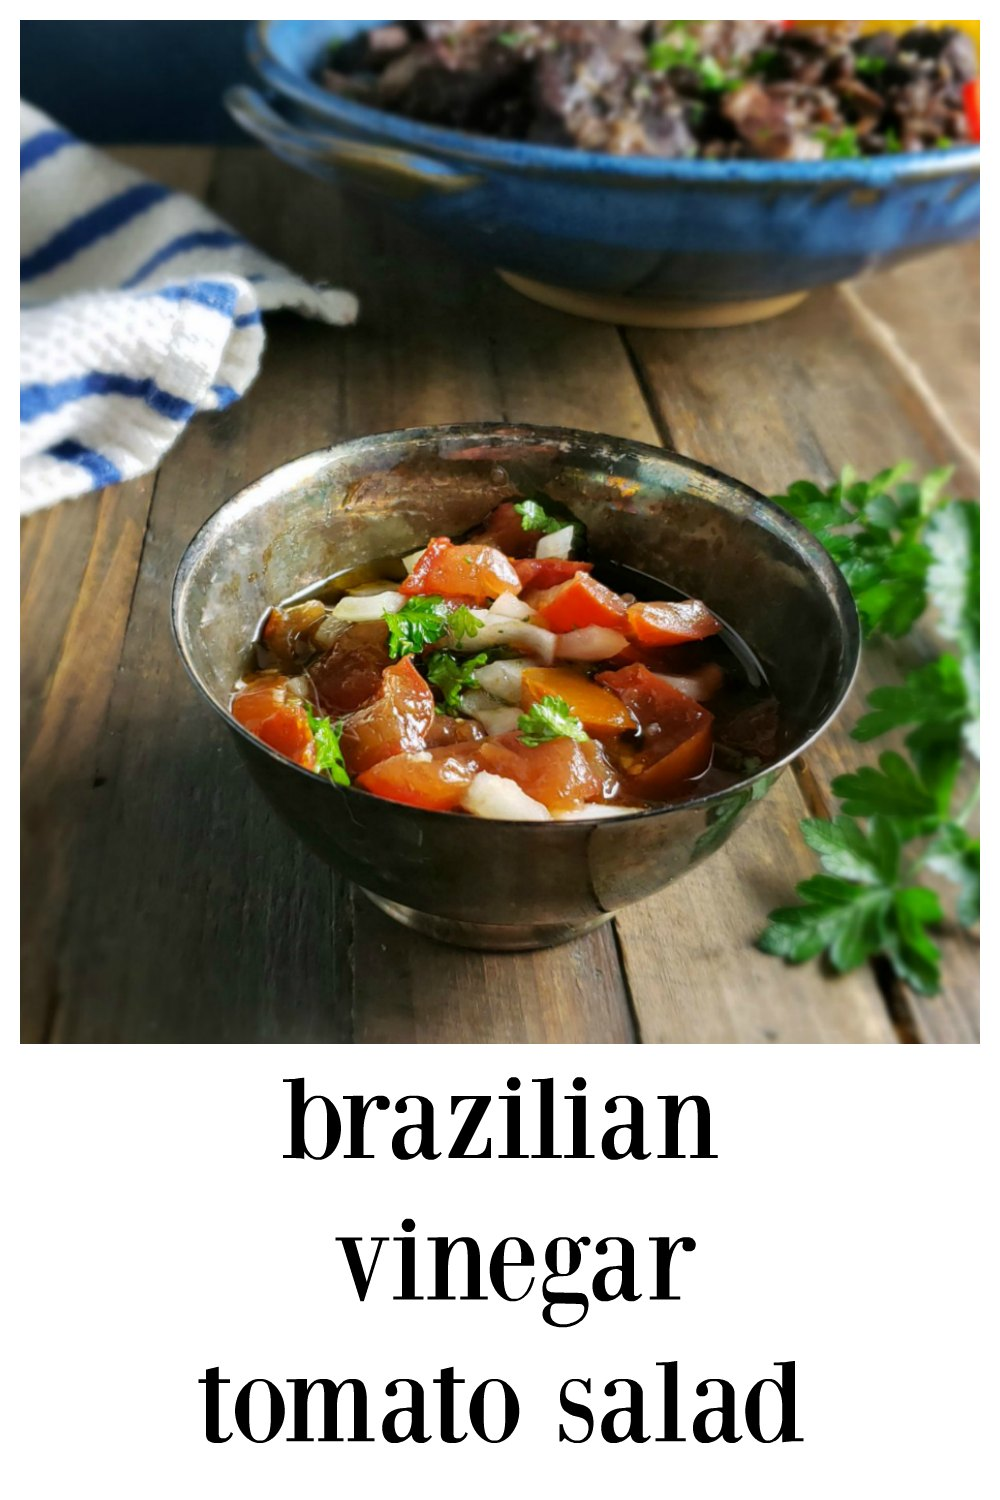 Brazilian Vinegar Tomato Salad goes with just about any Brazilian dish, but toss it out with just about anything to add some fresh veggies in your life! Minutes to make and gets better and better as it sits. #TomatoSalad #VinegarSalad #BrazilianTomatoSalad #BrazilianVinegarSalad #VinegarTomatoSalad #TraditionalBrazilian